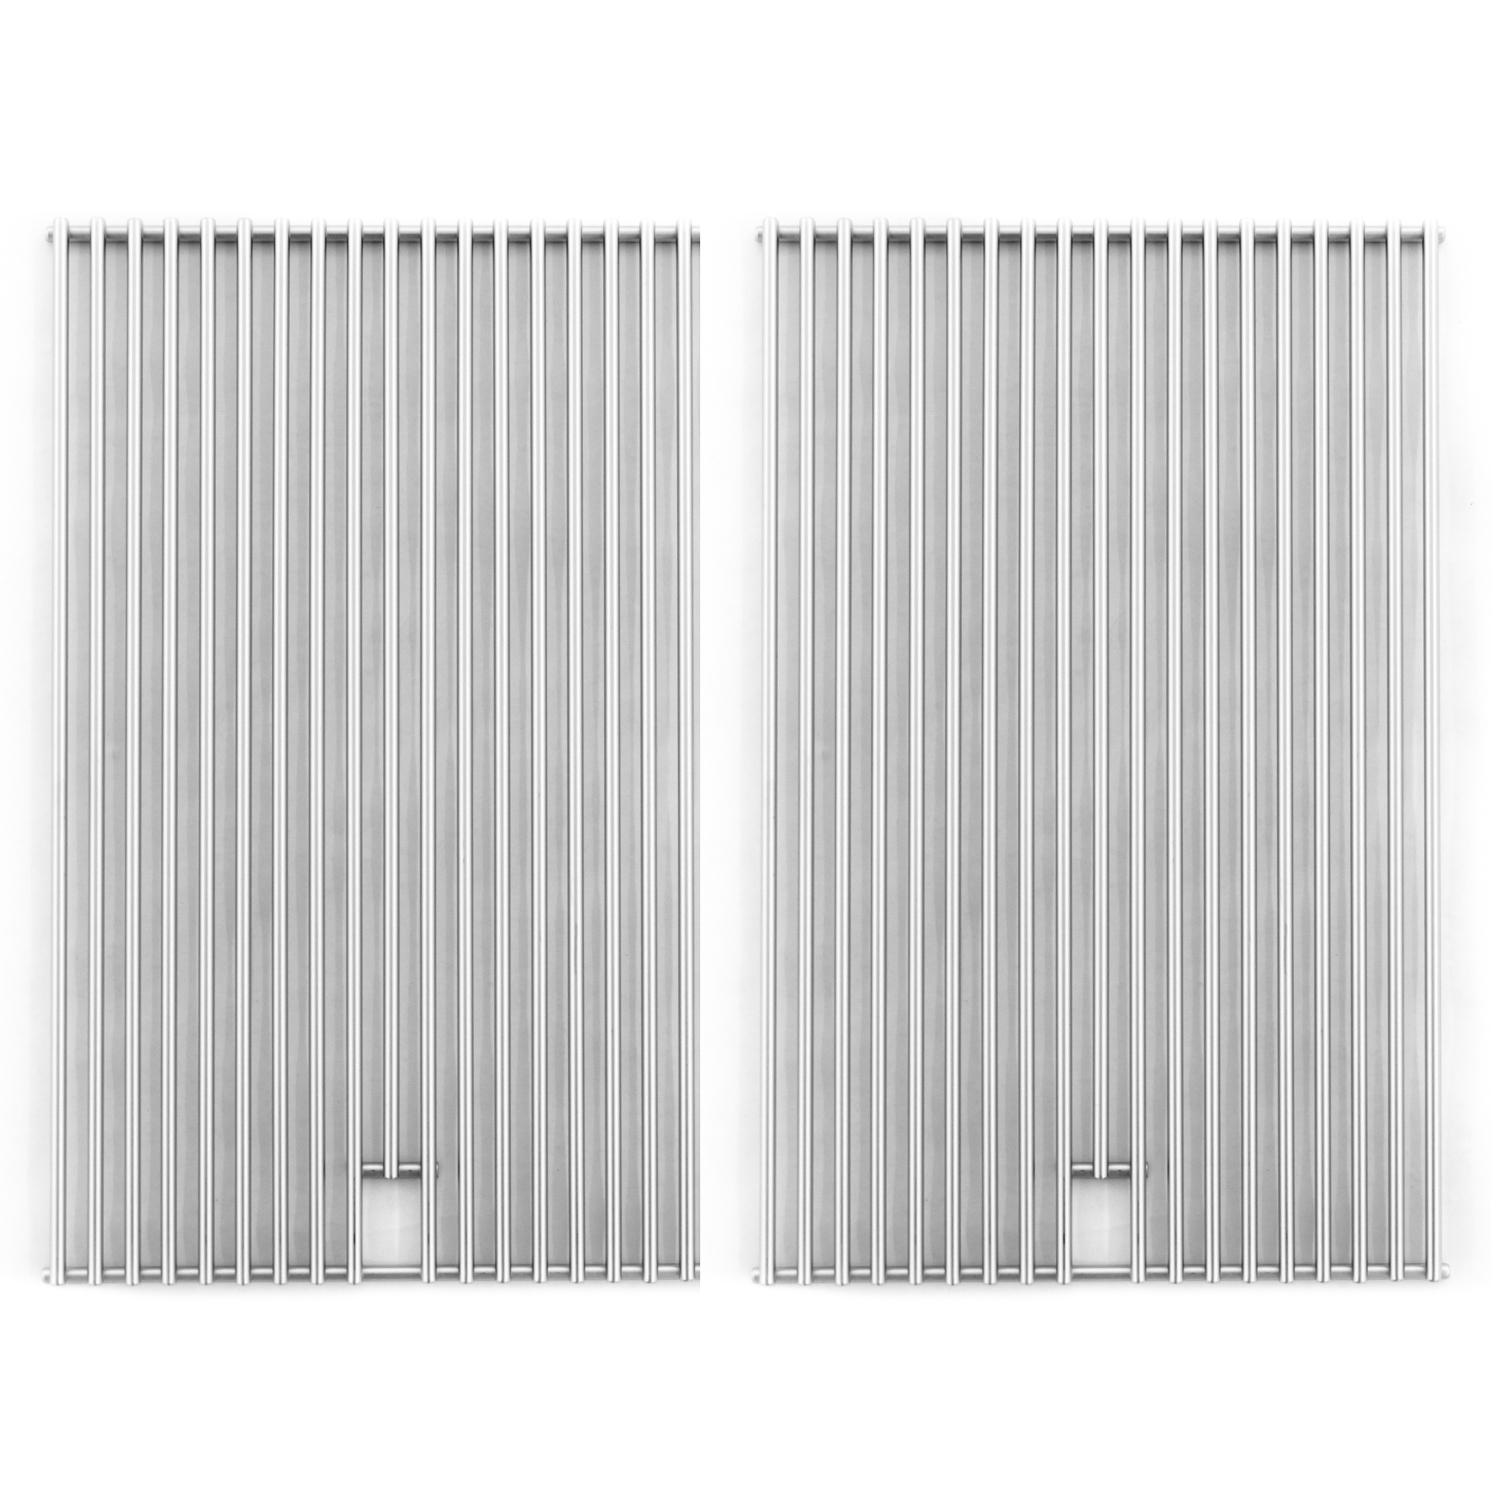 Aog American Outdoor Grill Stainless Steel Cooking Grate For 24 Inch Grill - Set Of Two - 24-b-11